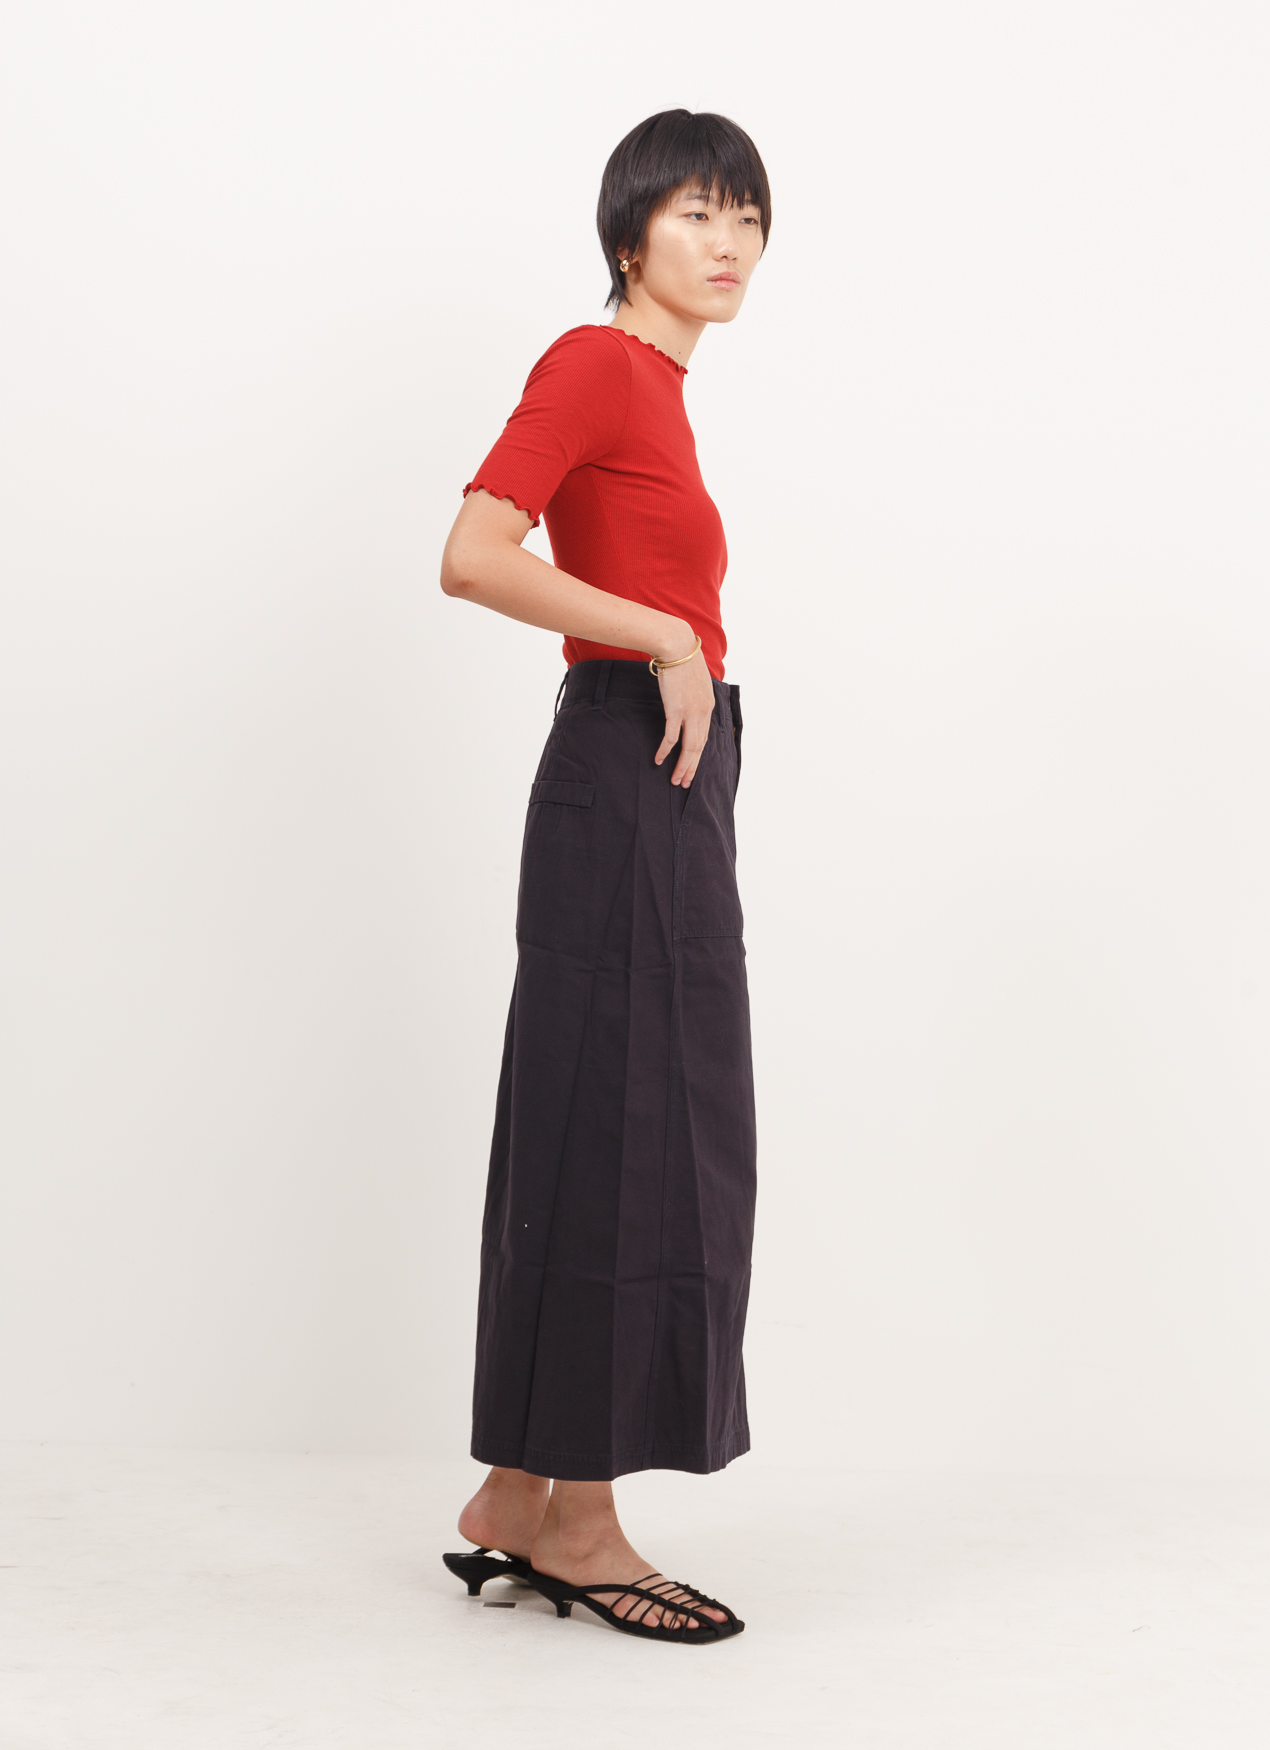 American Holic Myo Skirt - Navy